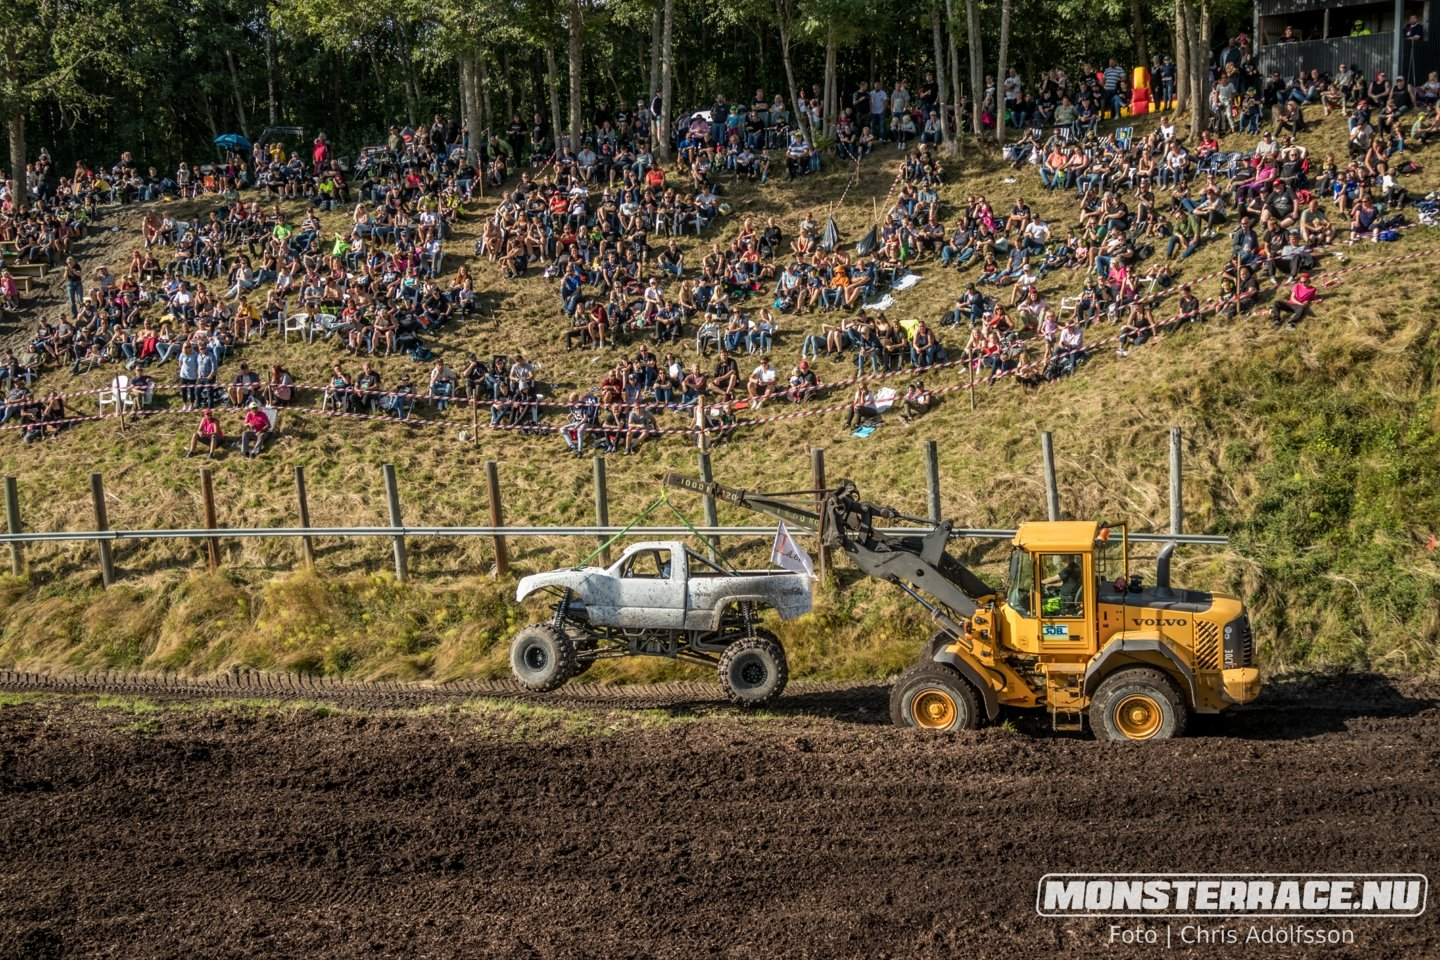 Monsterrace Ed dag 1 (250)